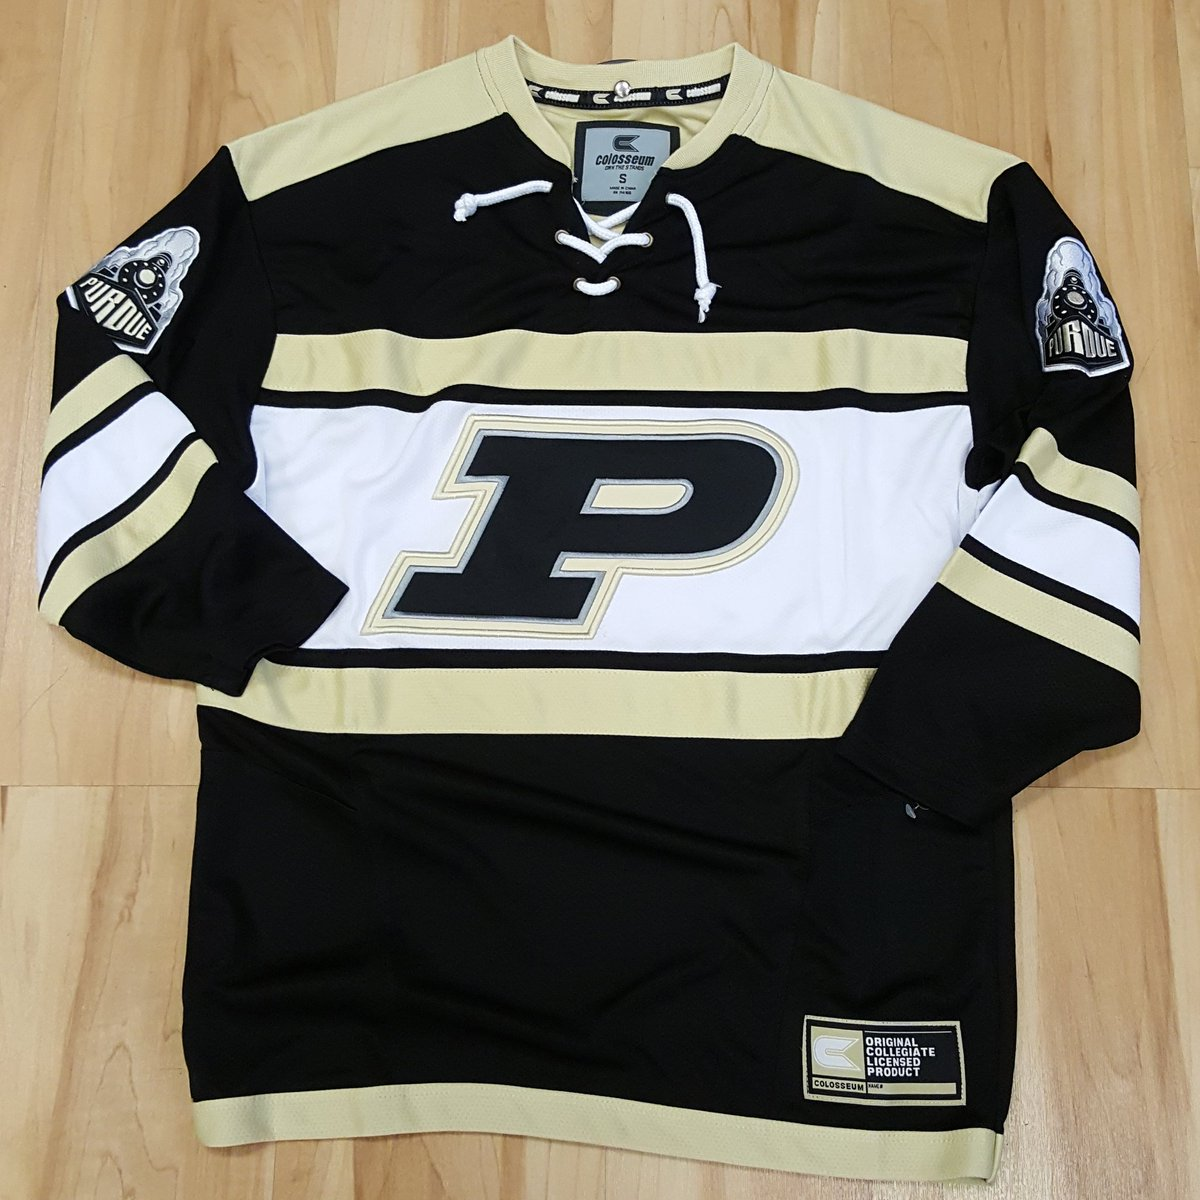 purdue hockey jerseys are back in stock get yours today before they are gone again boilerup purdue httpstcoicntleqlww